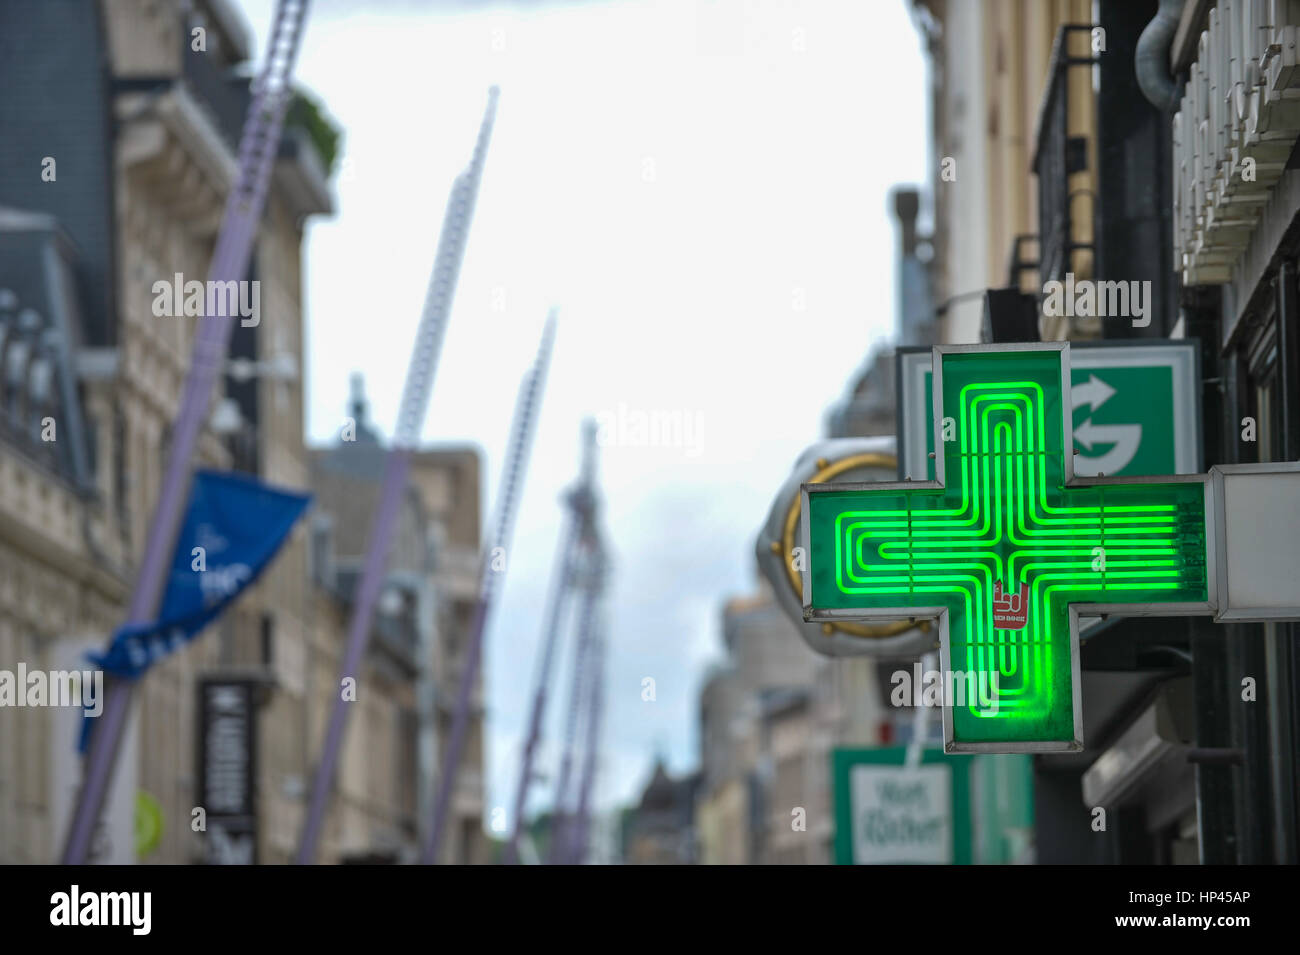 Esch-sur-Alzette, Luxembourg 08.06.2010. View of Alzette street with Pharmacy - Stock Image